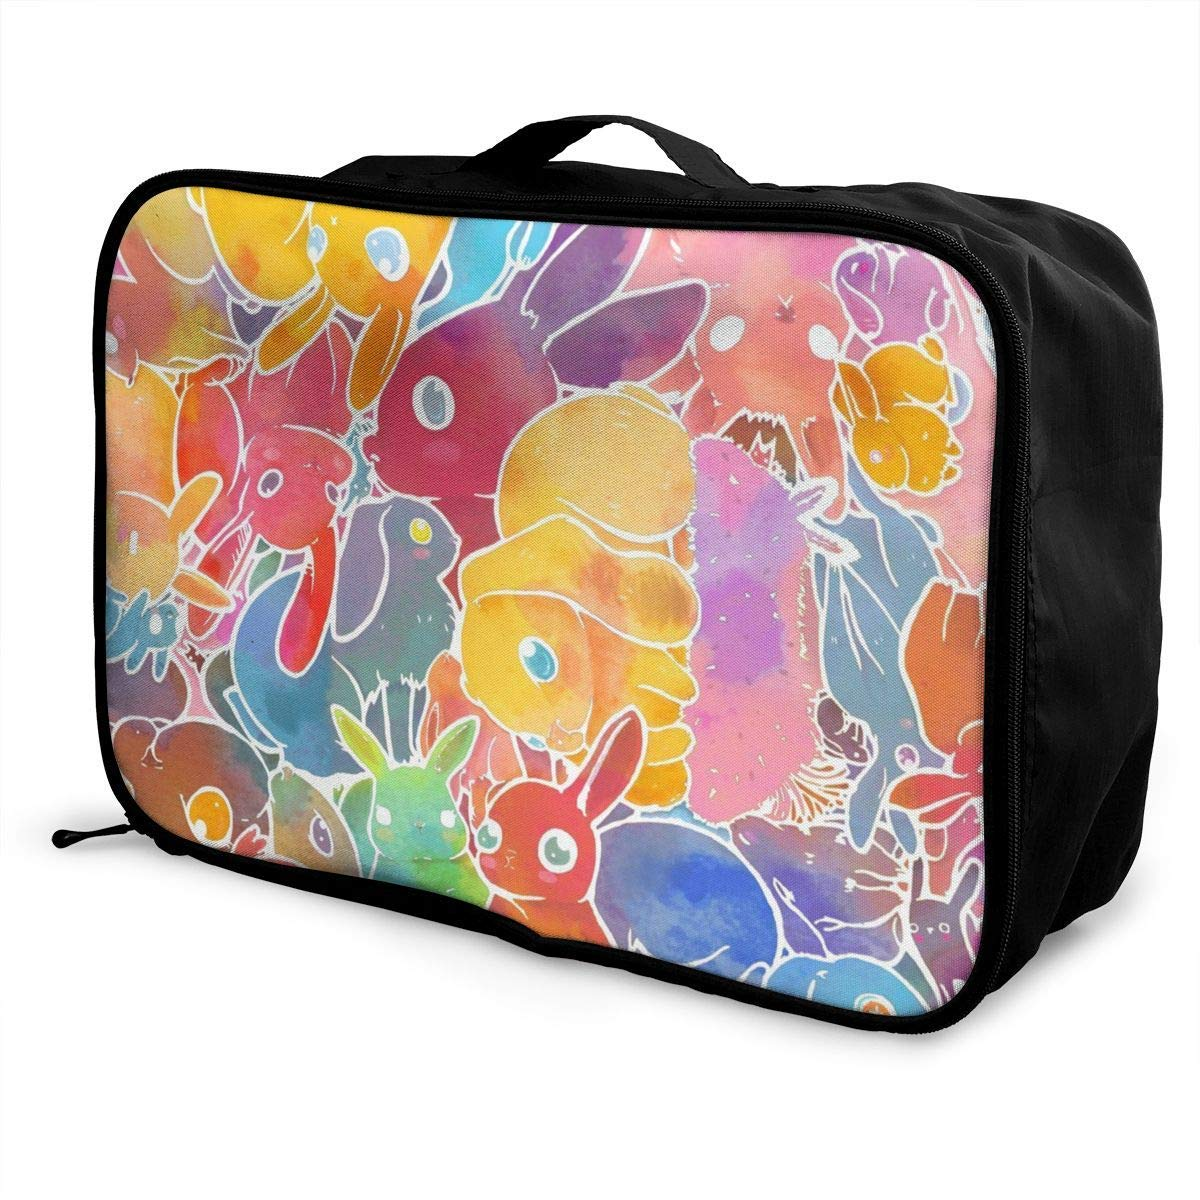 Travel Lightweight Waterproof Foldable Storage Carry Luggage Duffle Tote Bag Colorful Tie Dye Watercolor Art JTRVW Luggage Bags for Travel